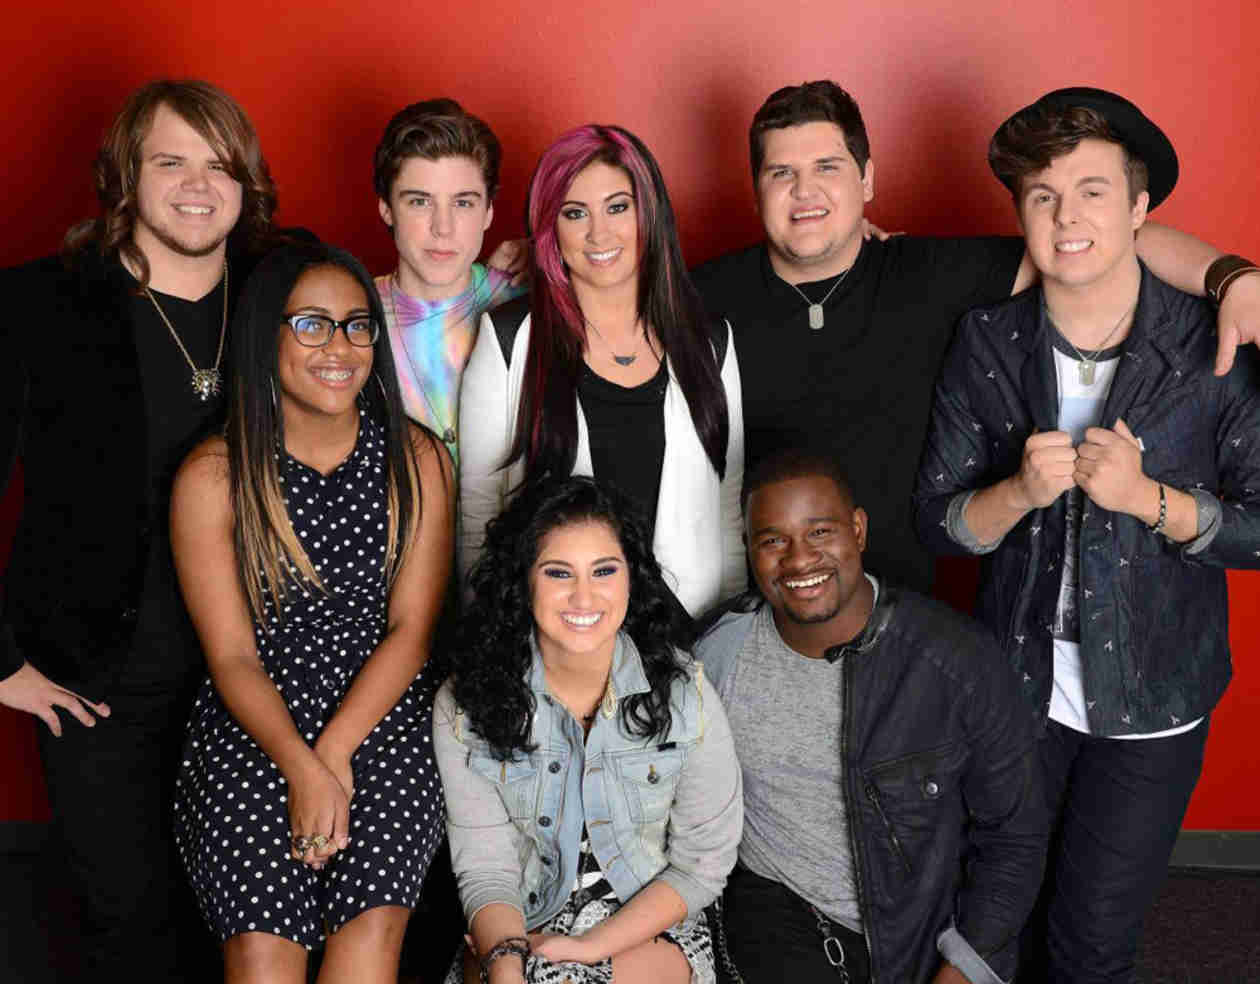 American Idol 2014: Who Should Go Home From The Top 8 — April 10, 2014?